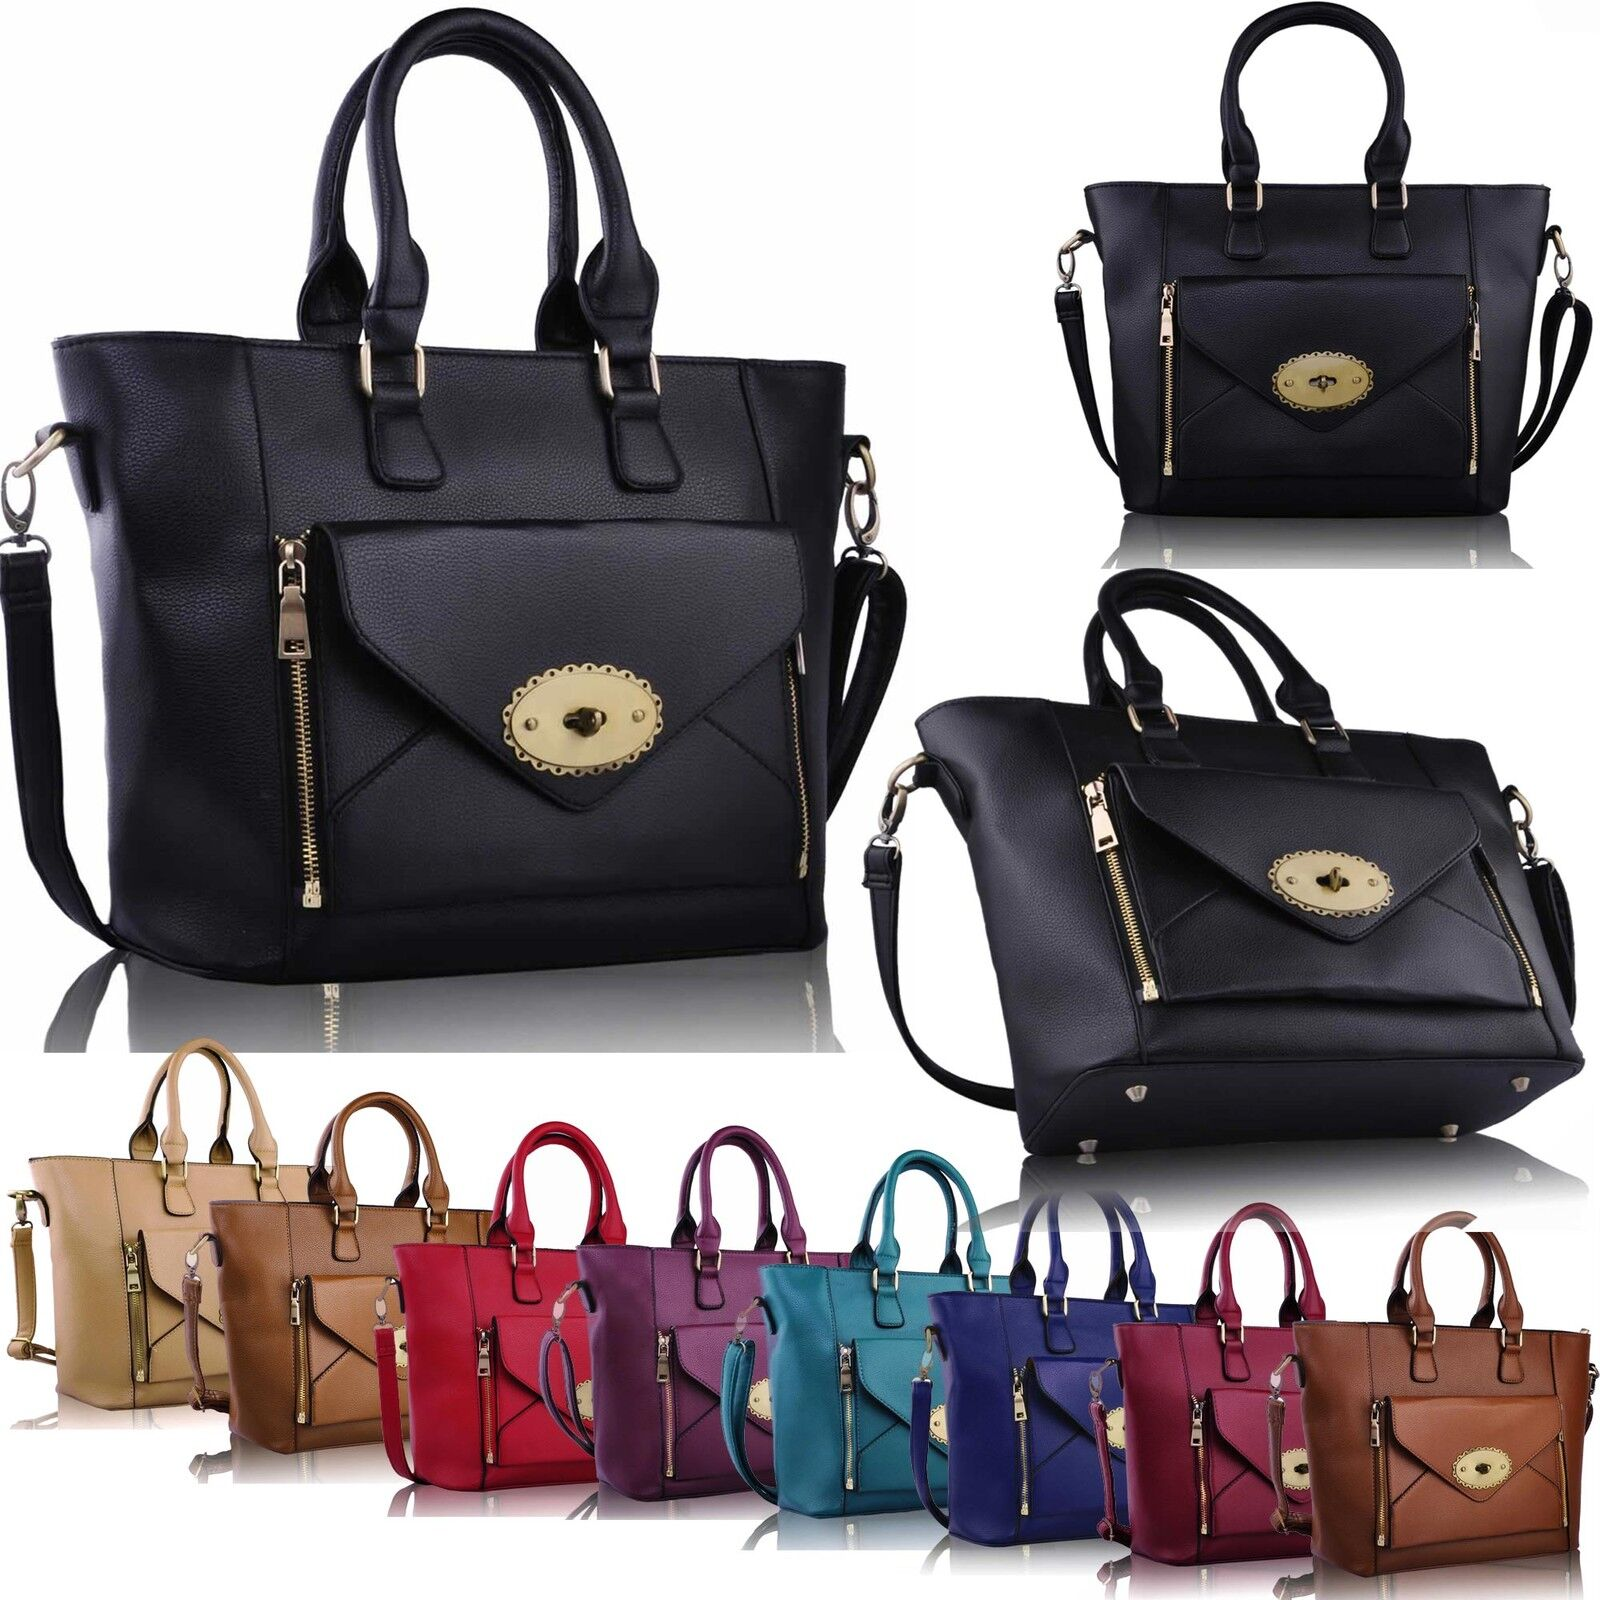 Free shipping on tote bags for women at teraisompcz8d.ga Shop a variety of tote-bag styles and sizes from the best brands. Free shipping and returns.